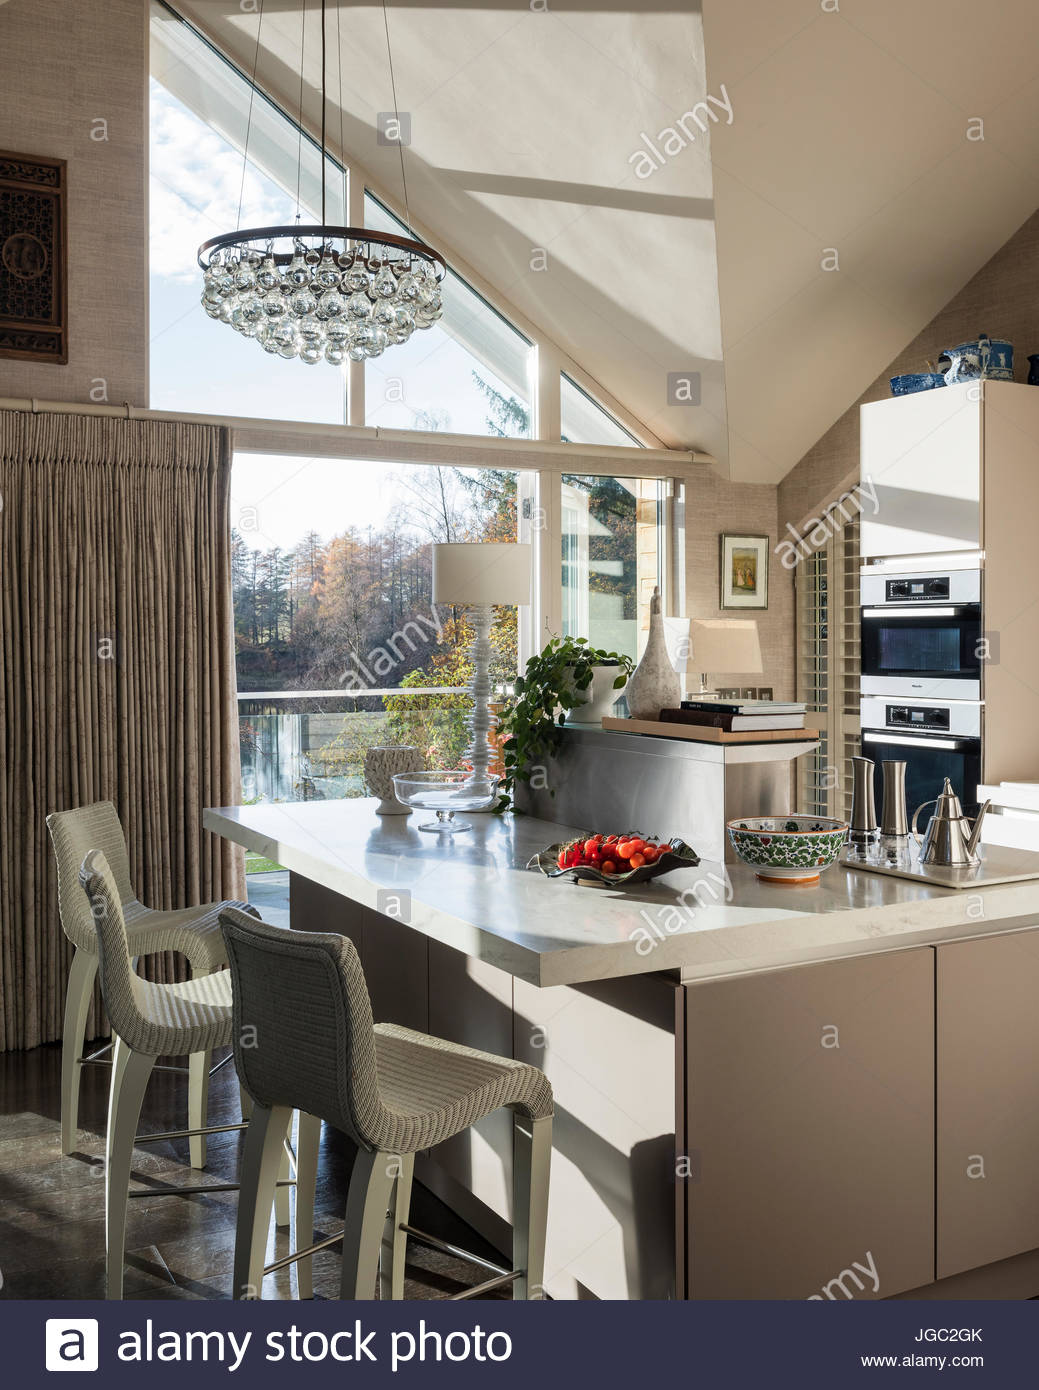 Lightbulb pendant above breakfast bar in A-frame kitchen with lakeside view - Stock Image